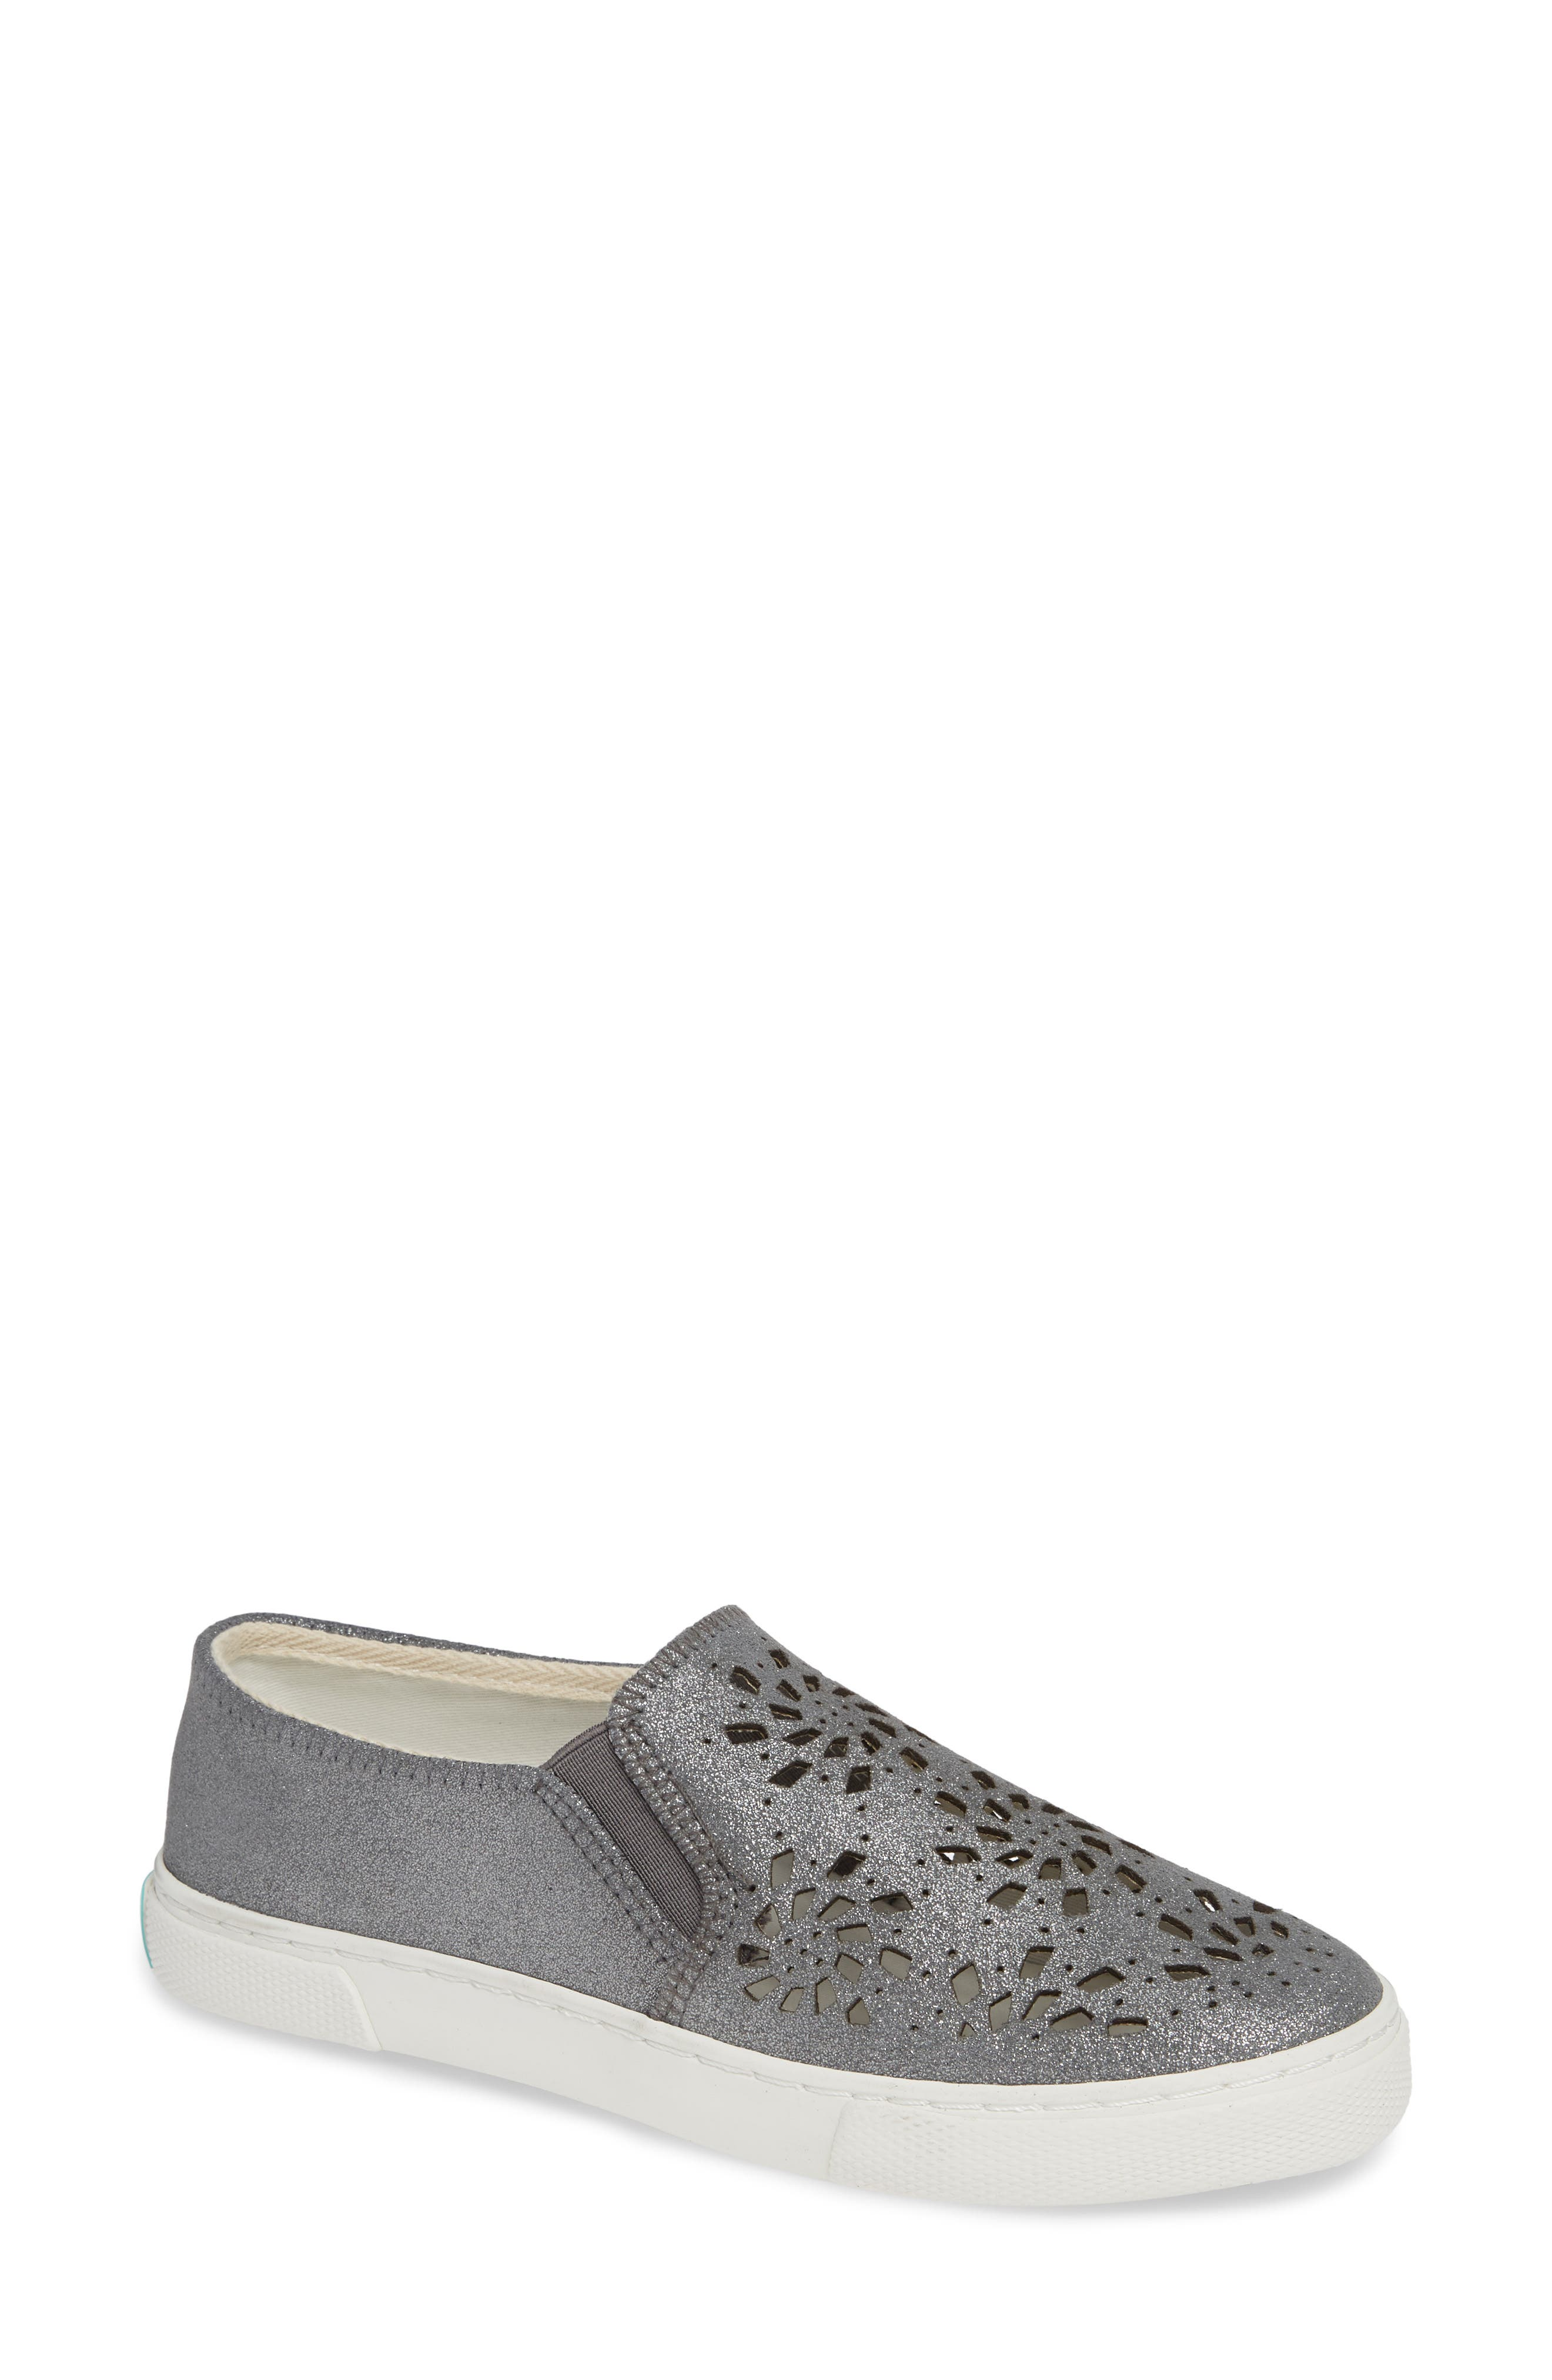 Violet Slip-On Sneaker,                             Main thumbnail 1, color,                             CHARCOAL LEATHER